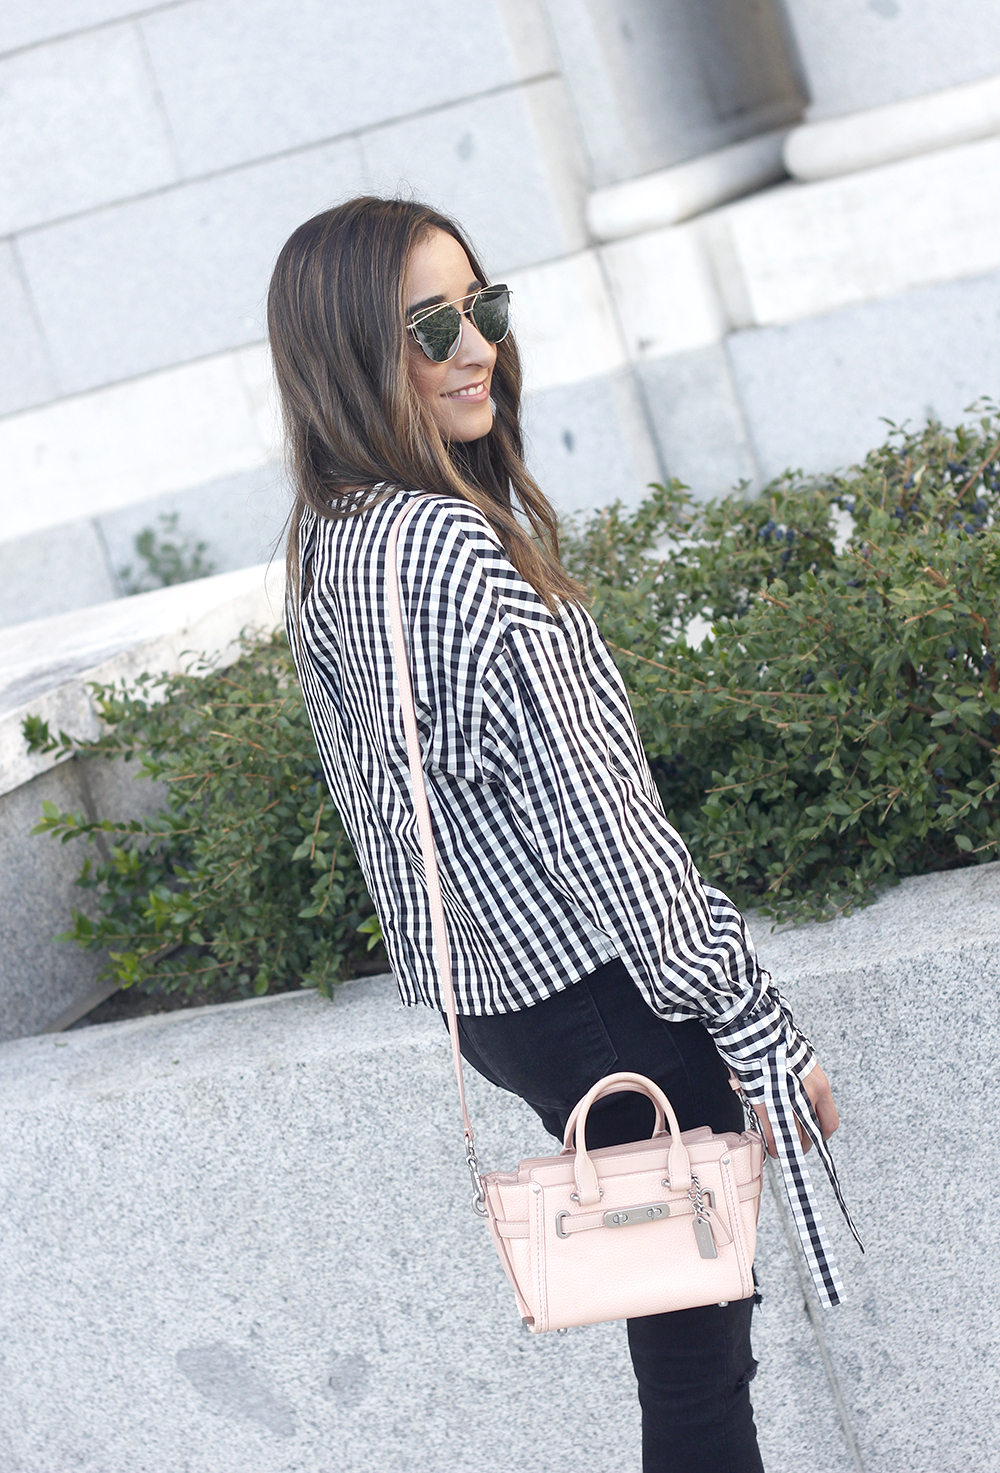 vichy shirt black ripped jeans black heels coach bag accessories outfit style fashion15